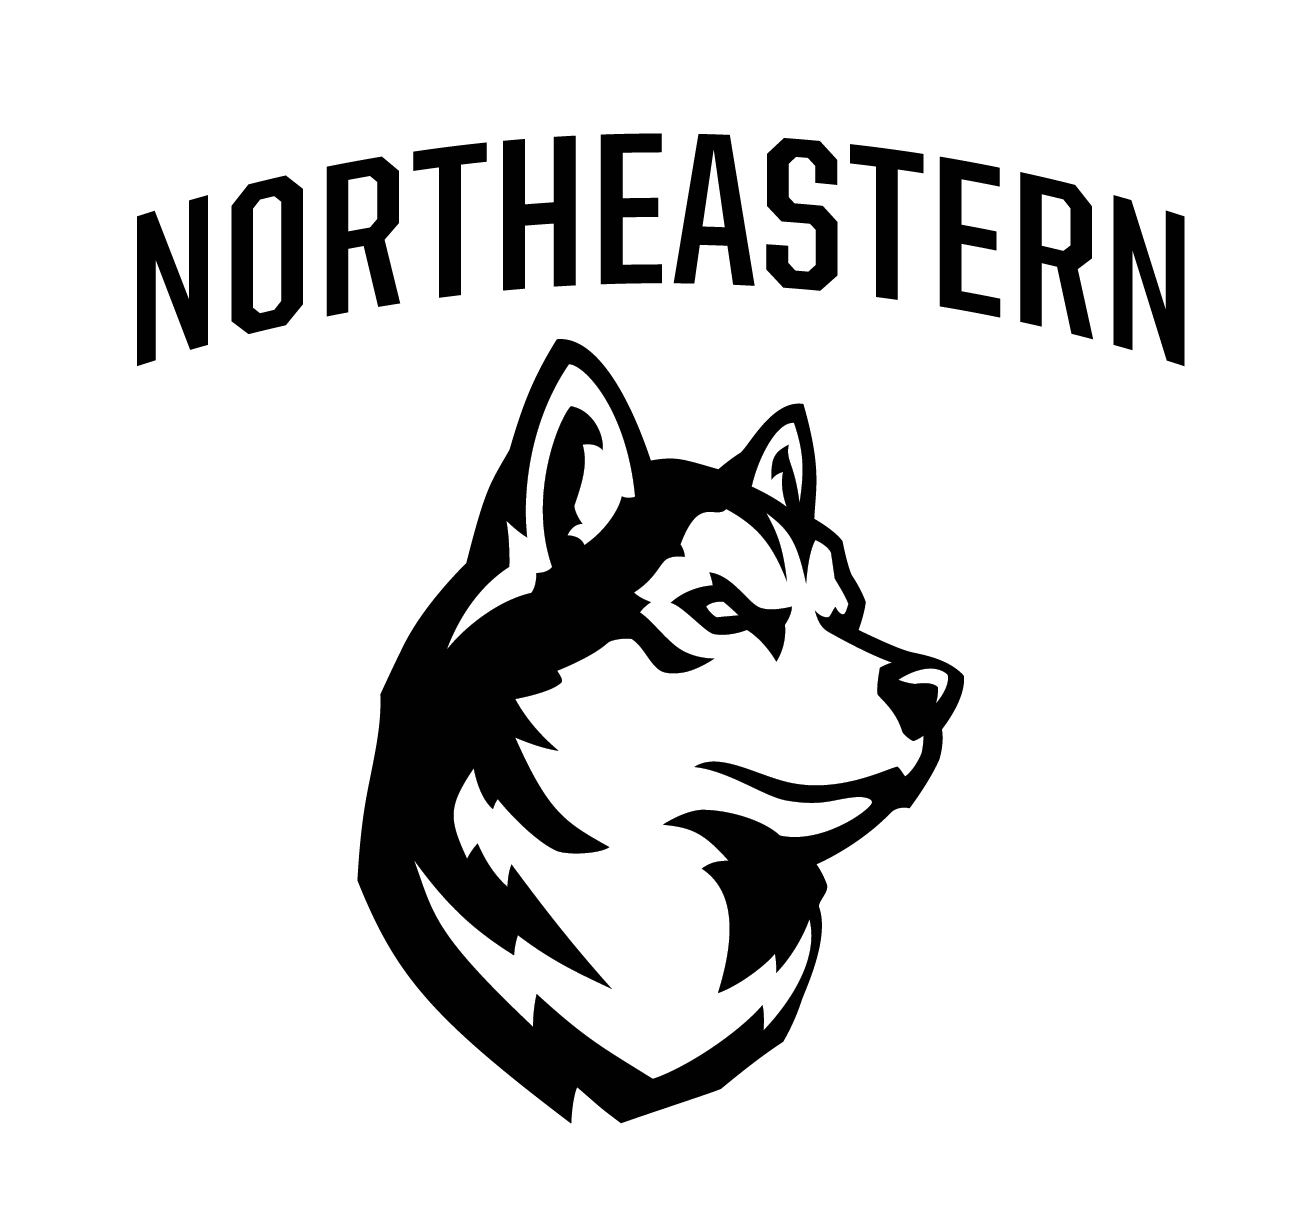 Northeastern B's logo